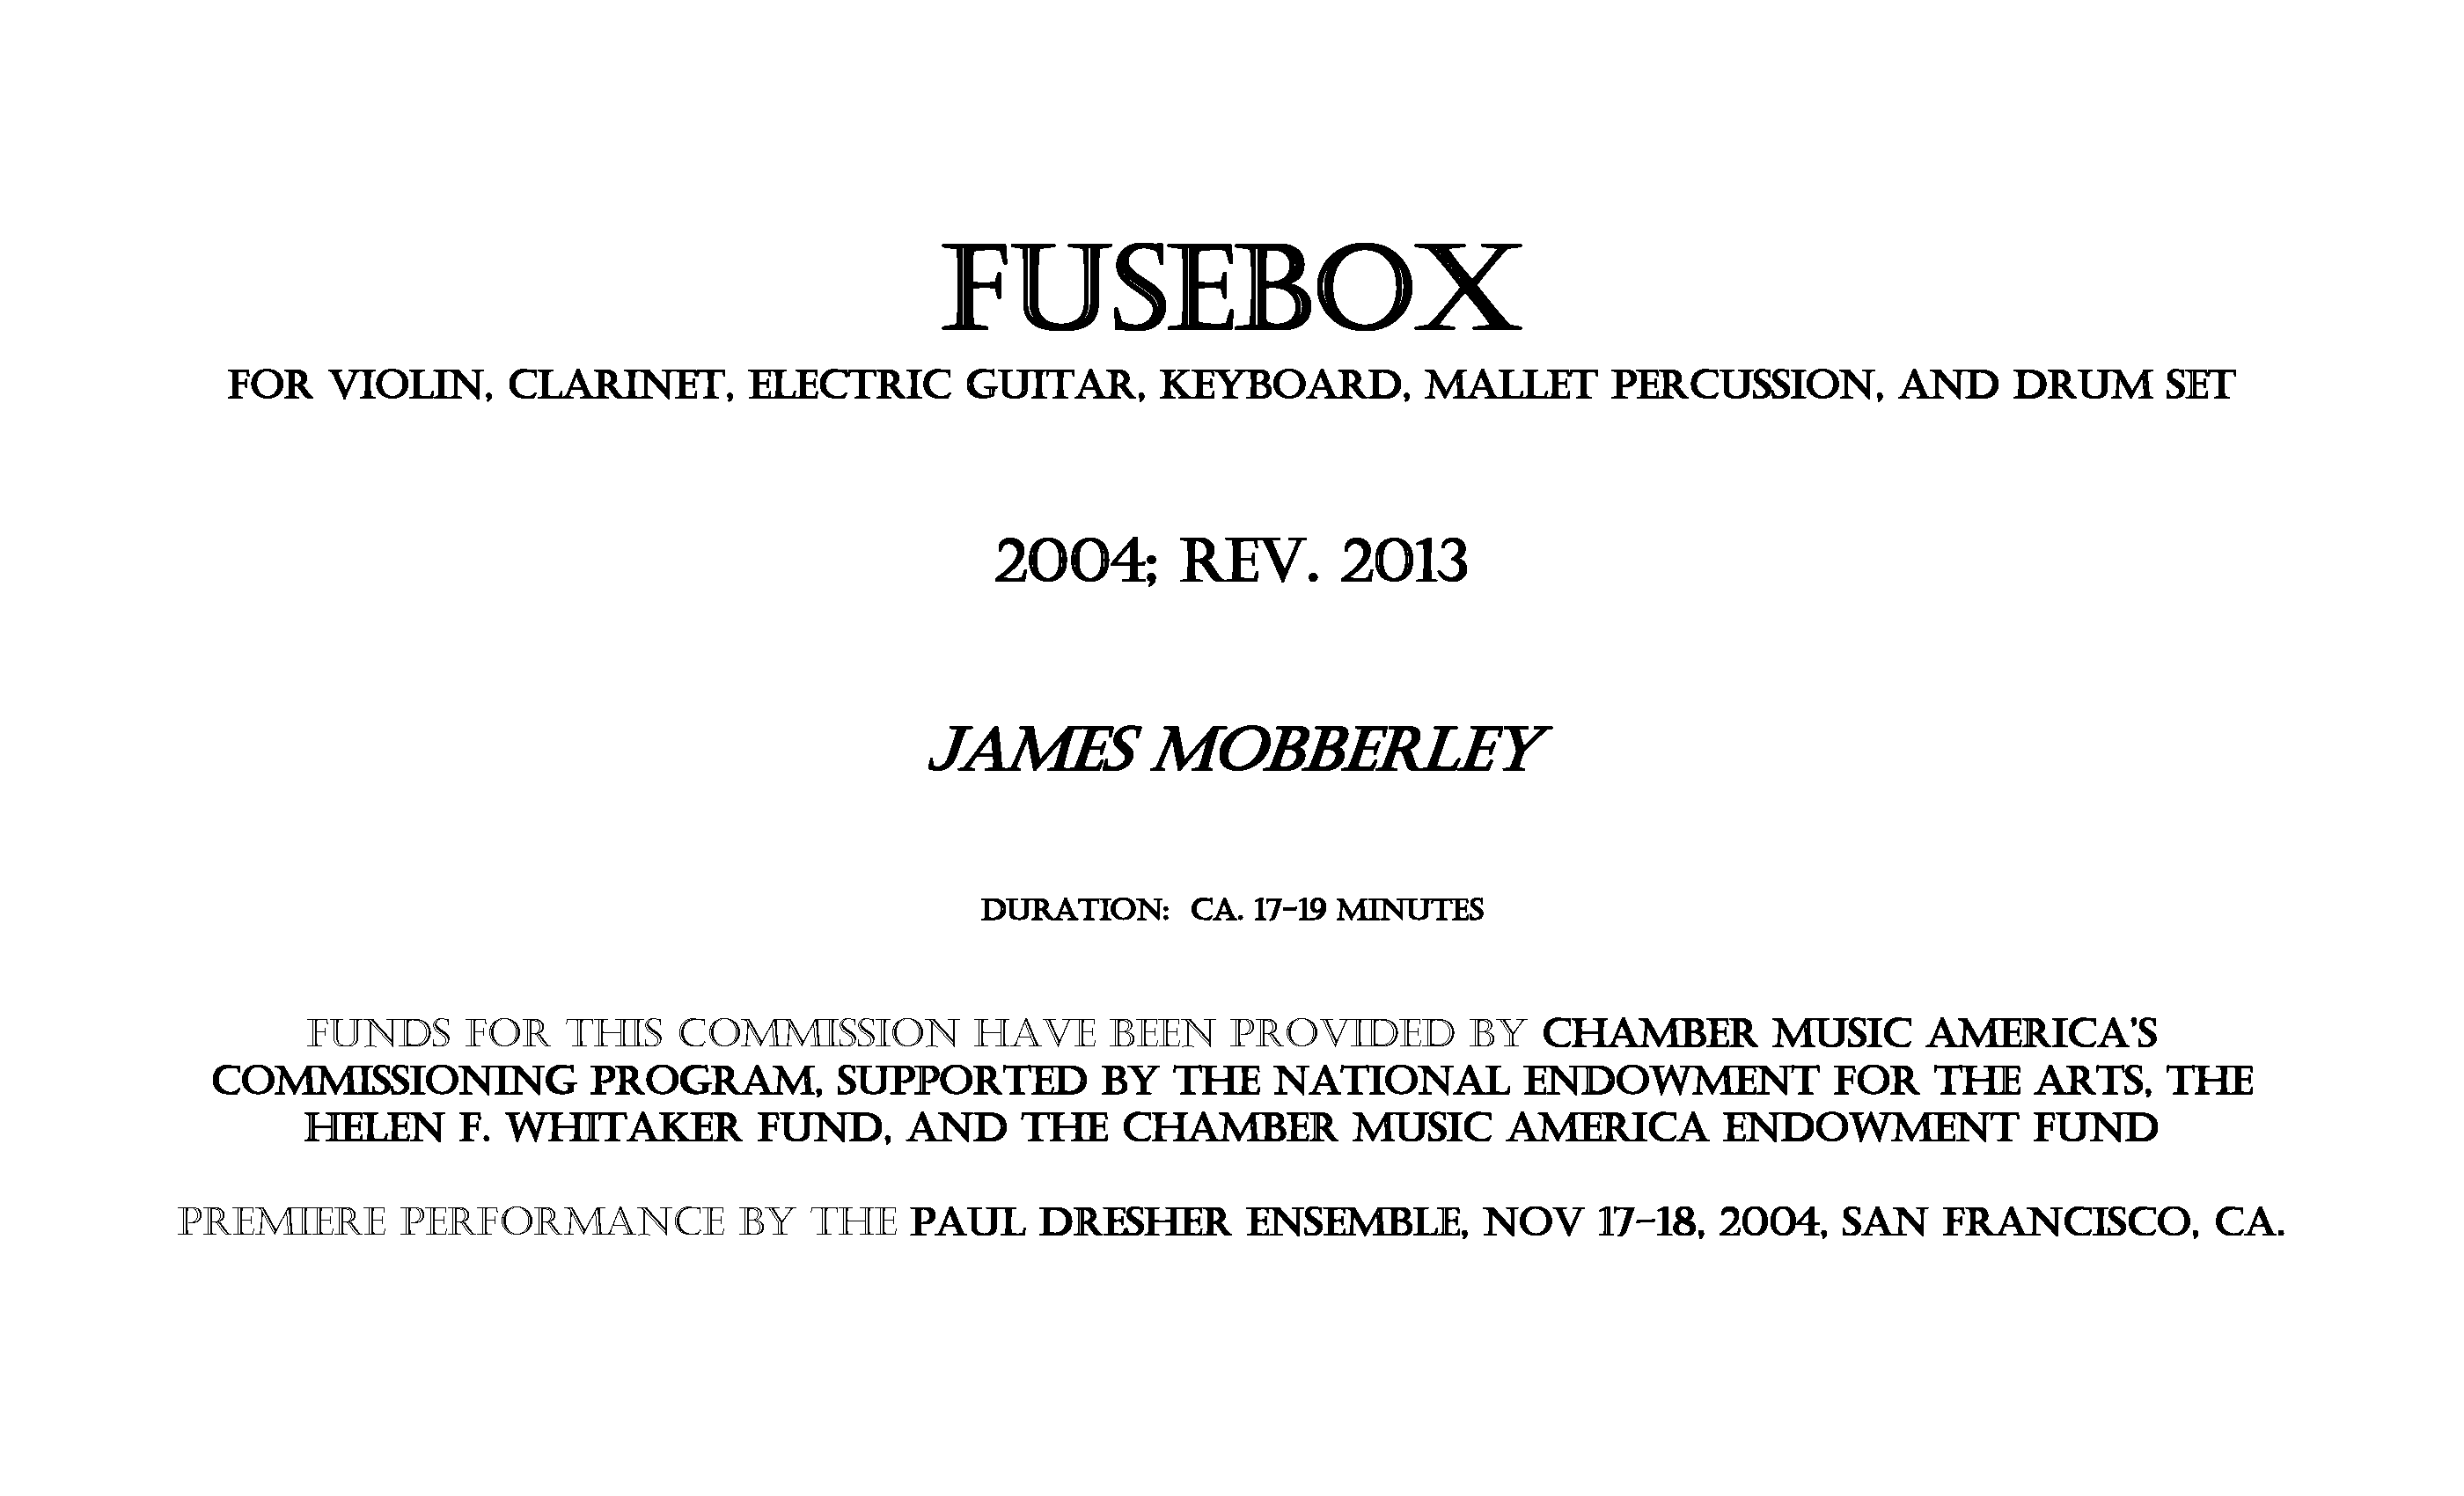 Fusebox Pages 10 James Mobberley Fuse Box Icon Website Page 01